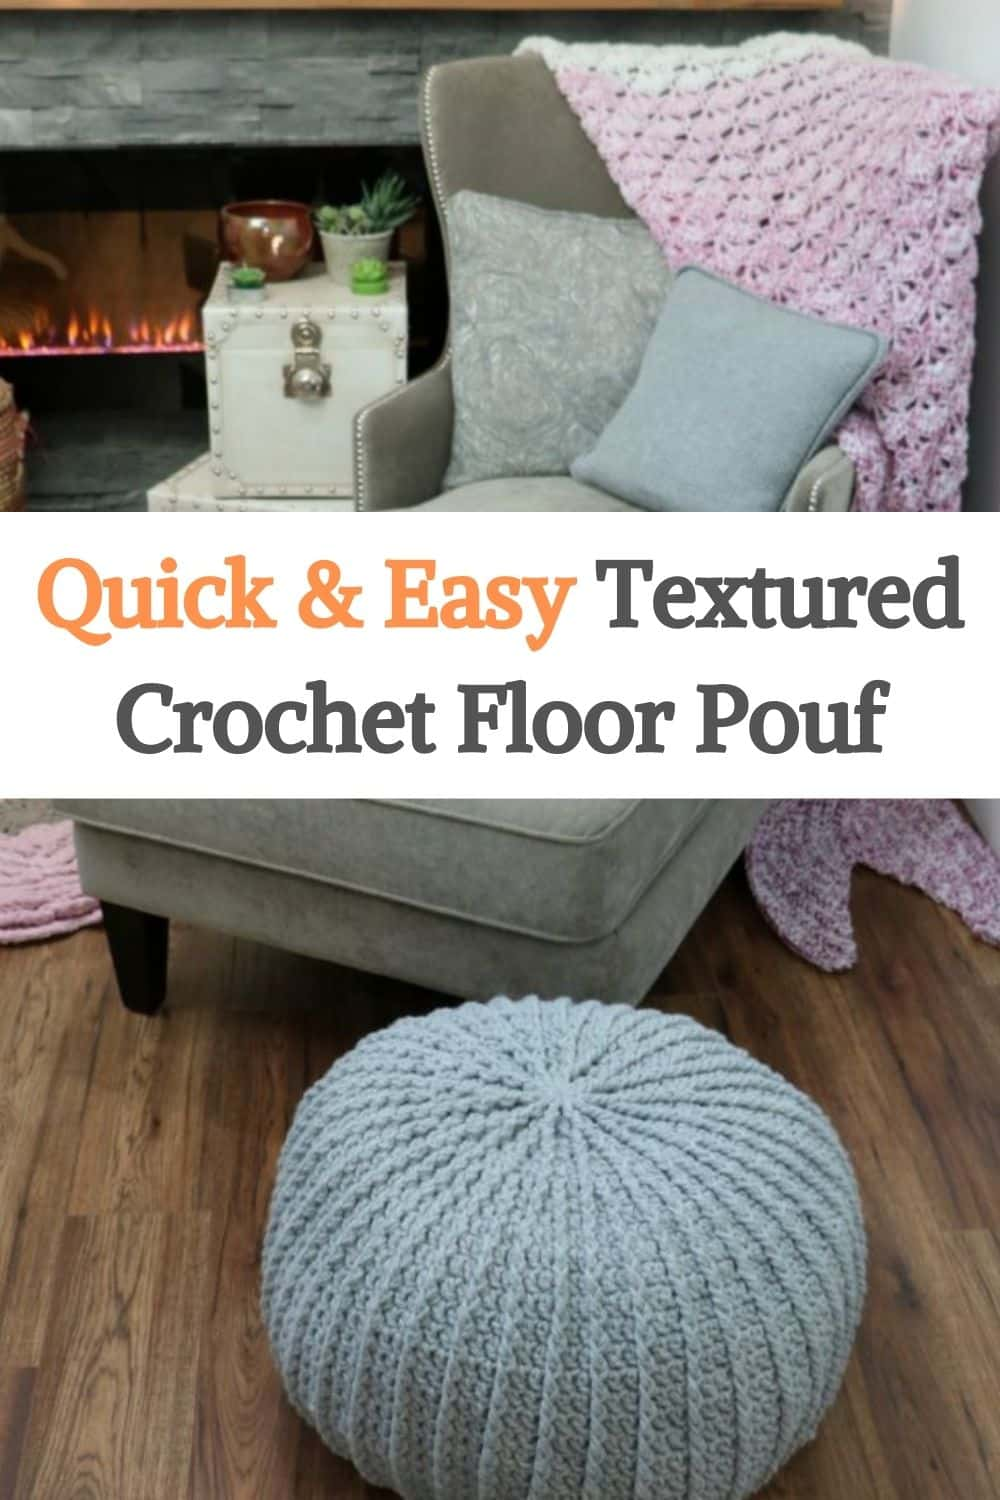 Crochet Floor Pouf